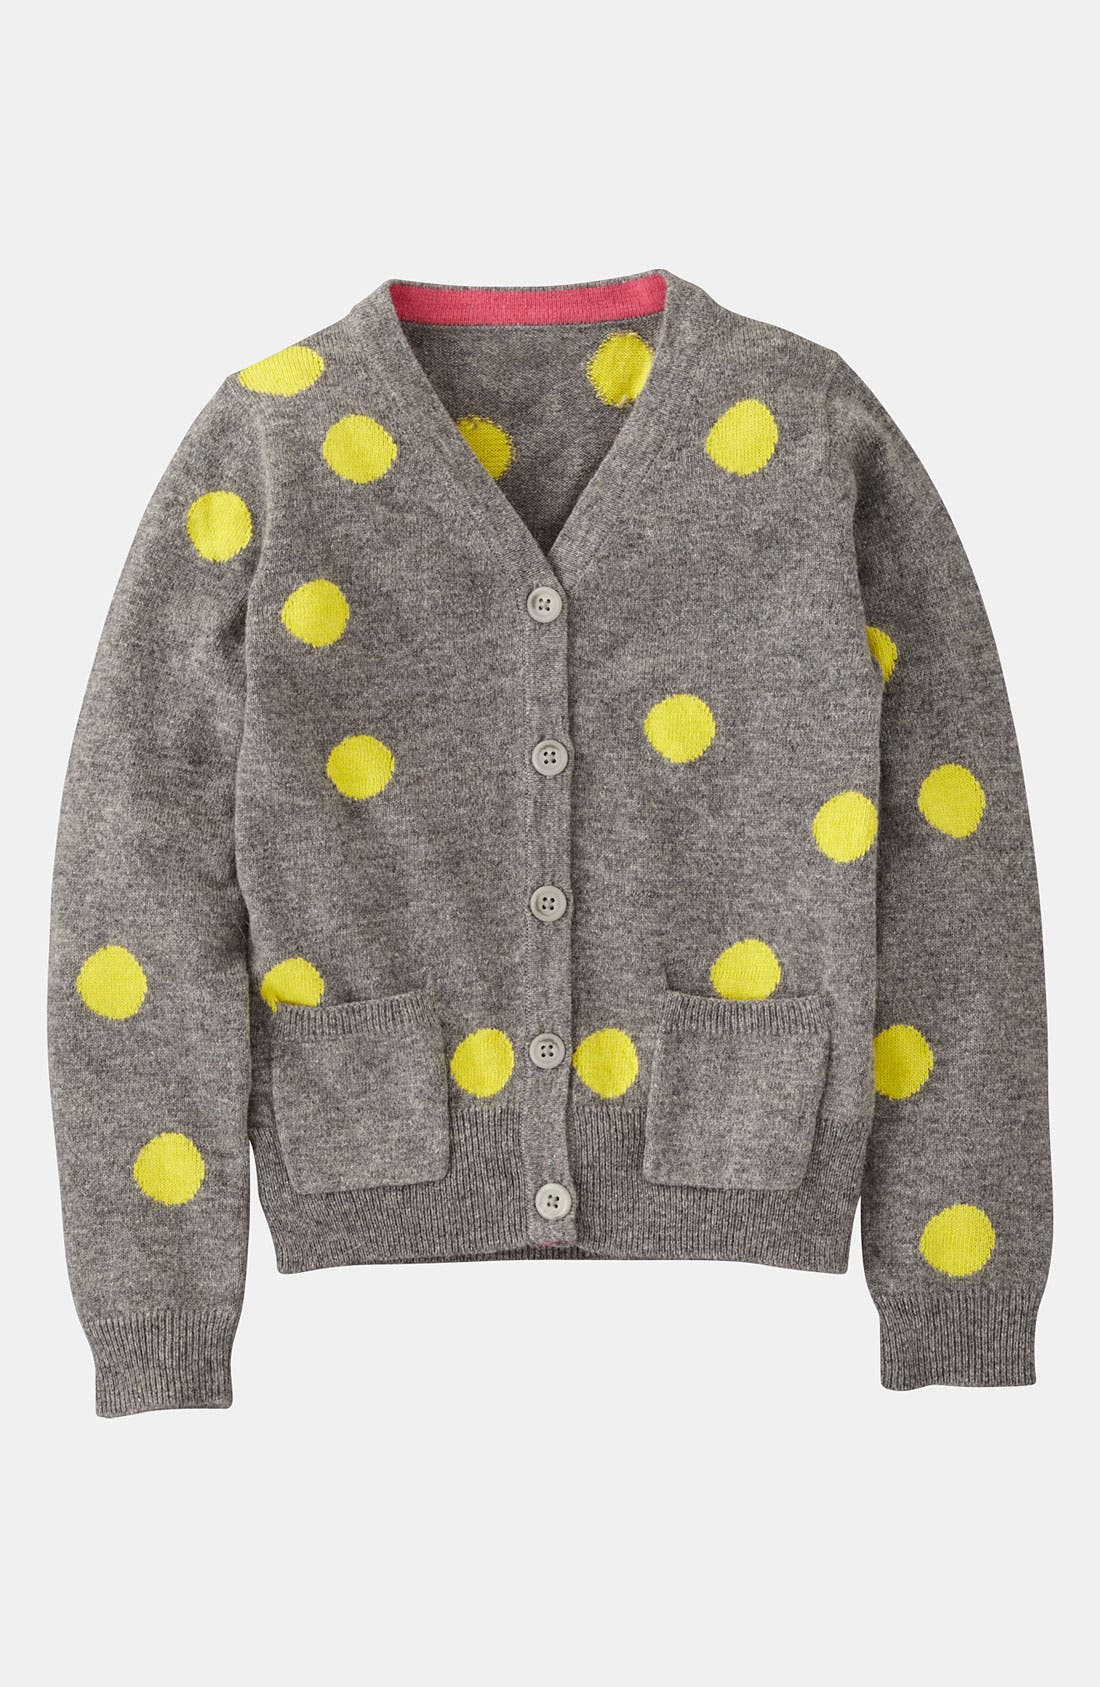 Alternate Image 1 Selected - Mini Boden 'Hotchpotch' Cardigan (Toddler)